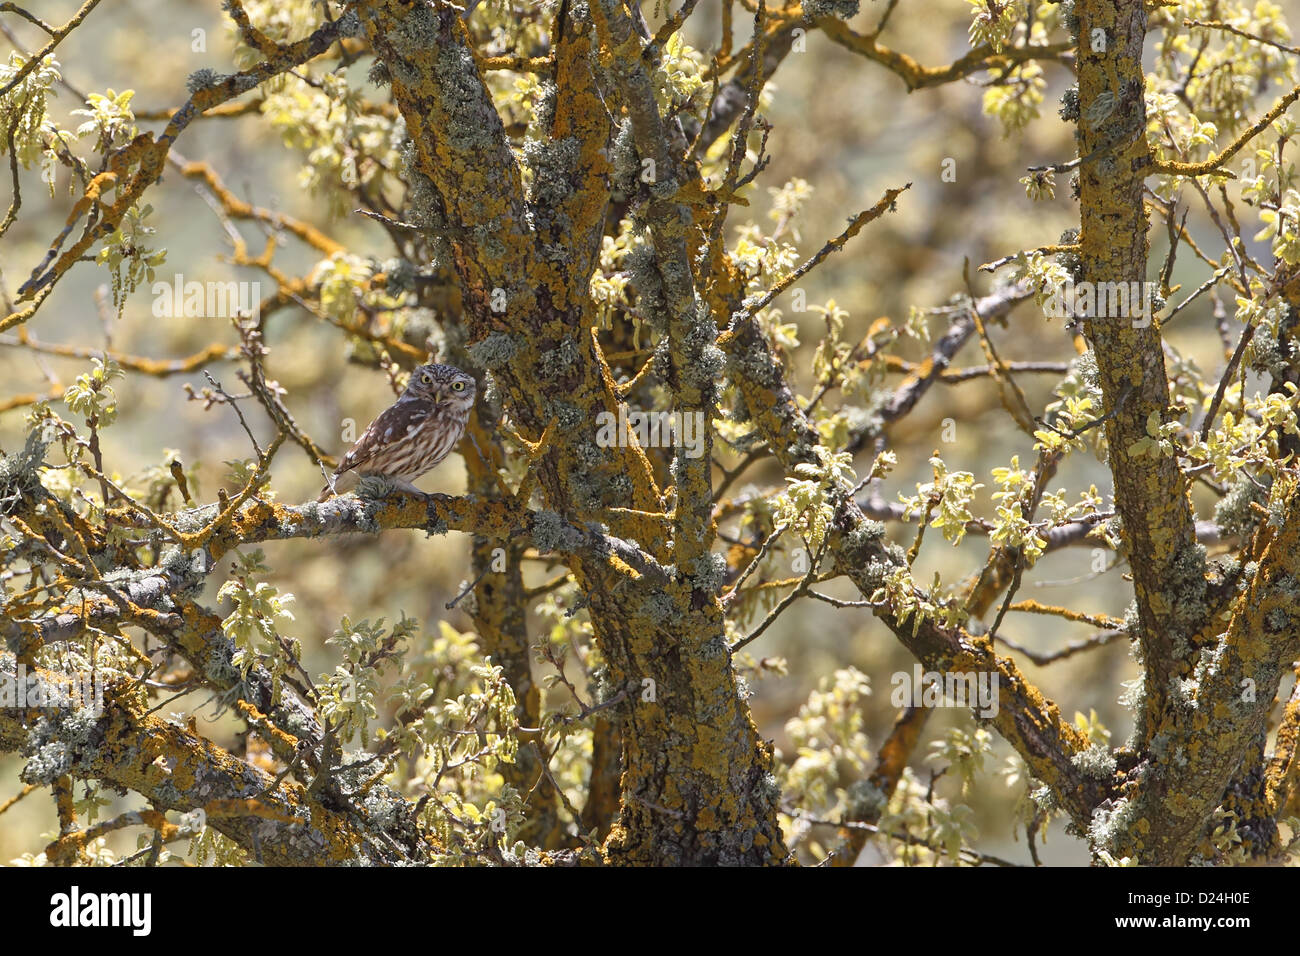 Little Owl (Athene noctua) adult, perched on lichen covered branch in tree, Lesvos, Greece, april - Stock Image